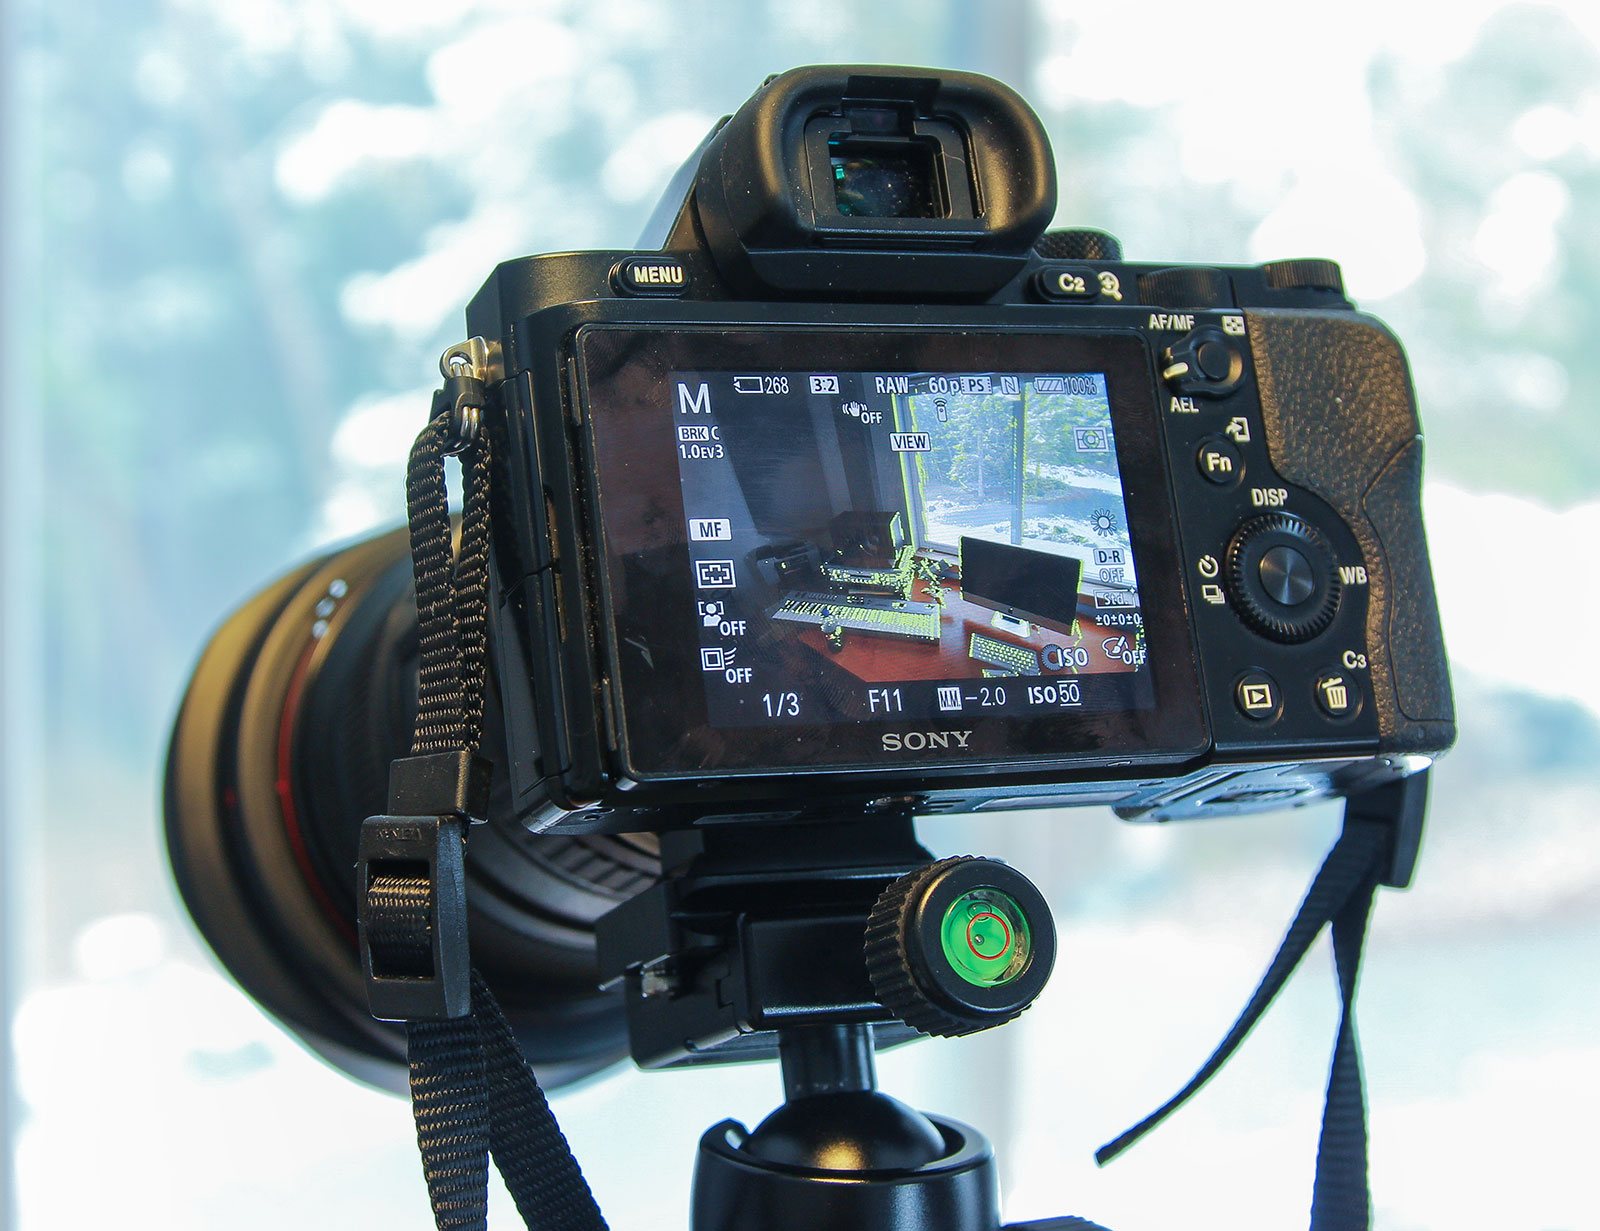 Sony A7R Review and Setup Guide with Example Images